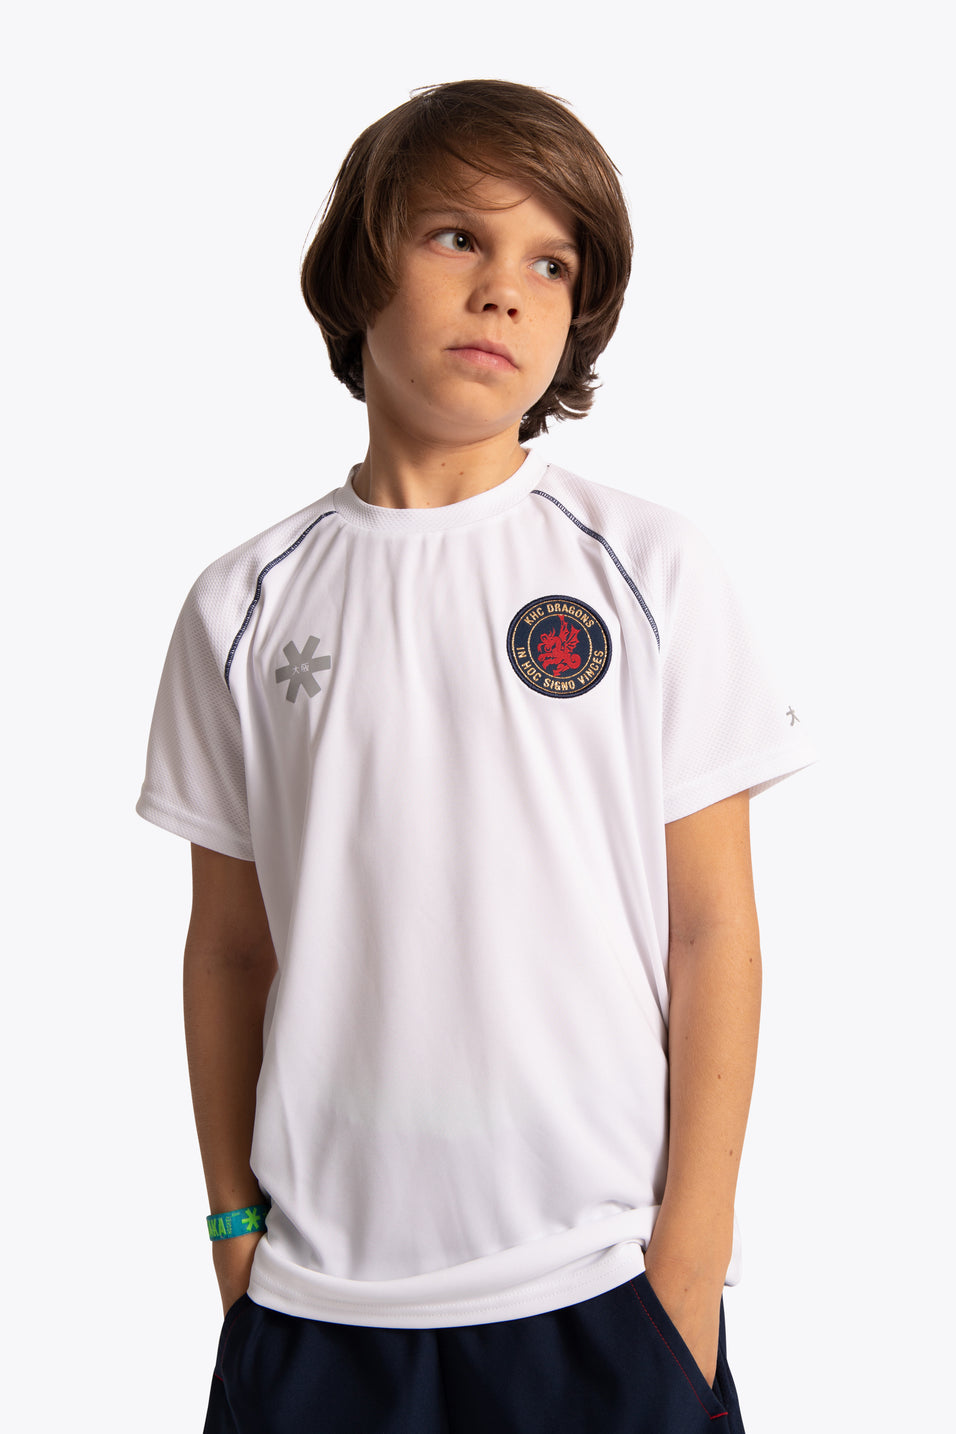 KHC Dragons Deshi Training Tee - White